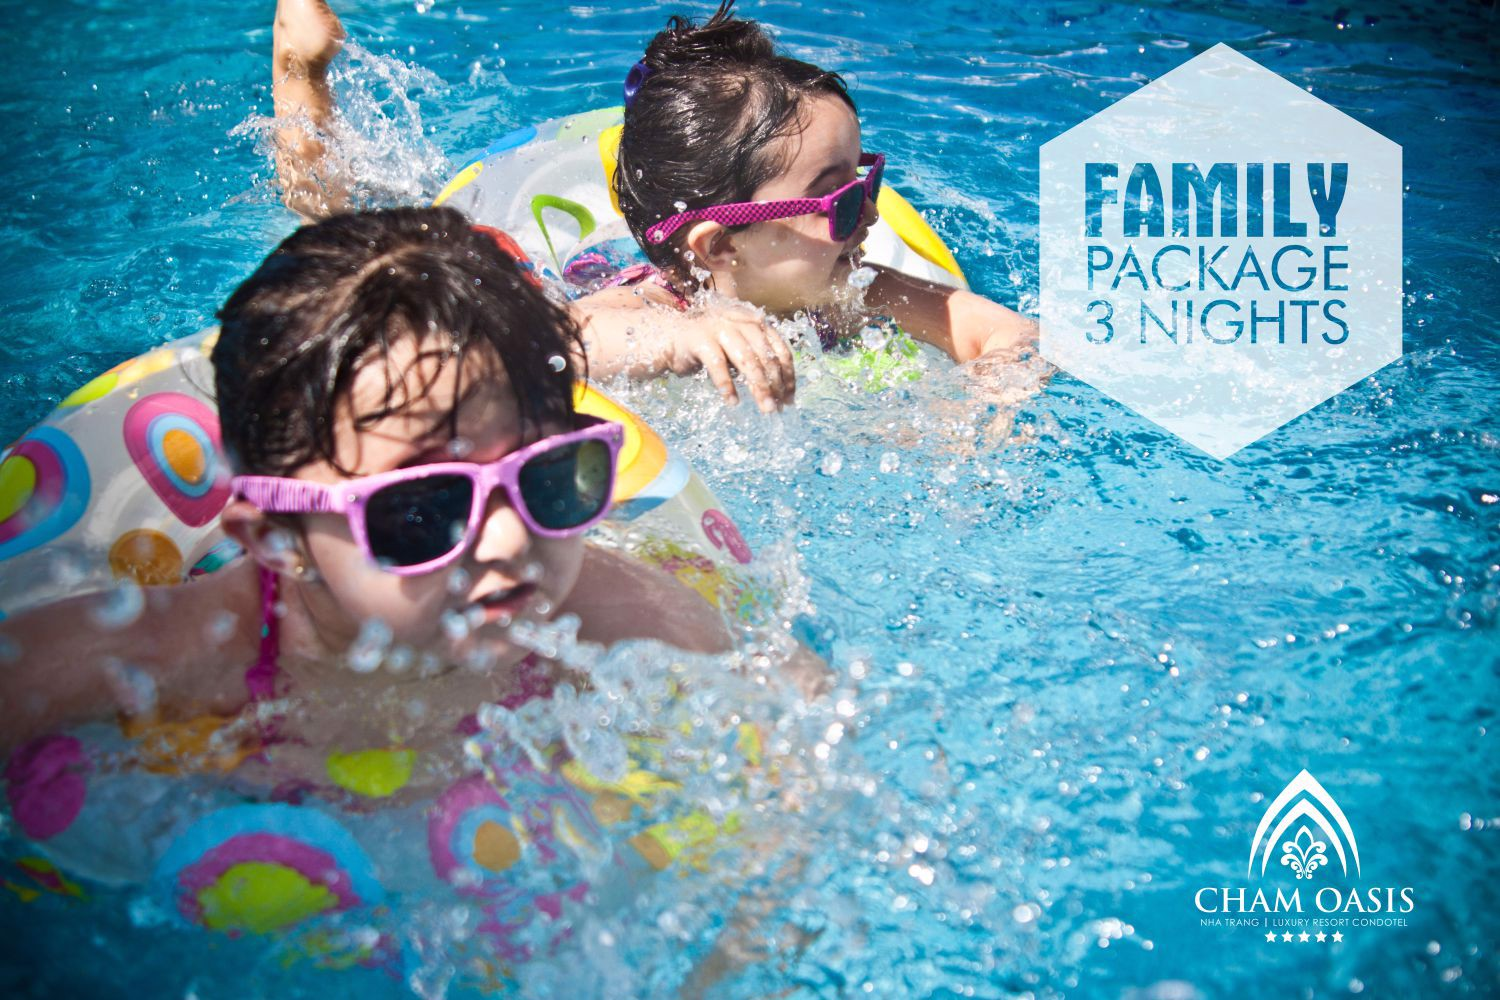 3 NIGHTS FAMILY PACKAGE